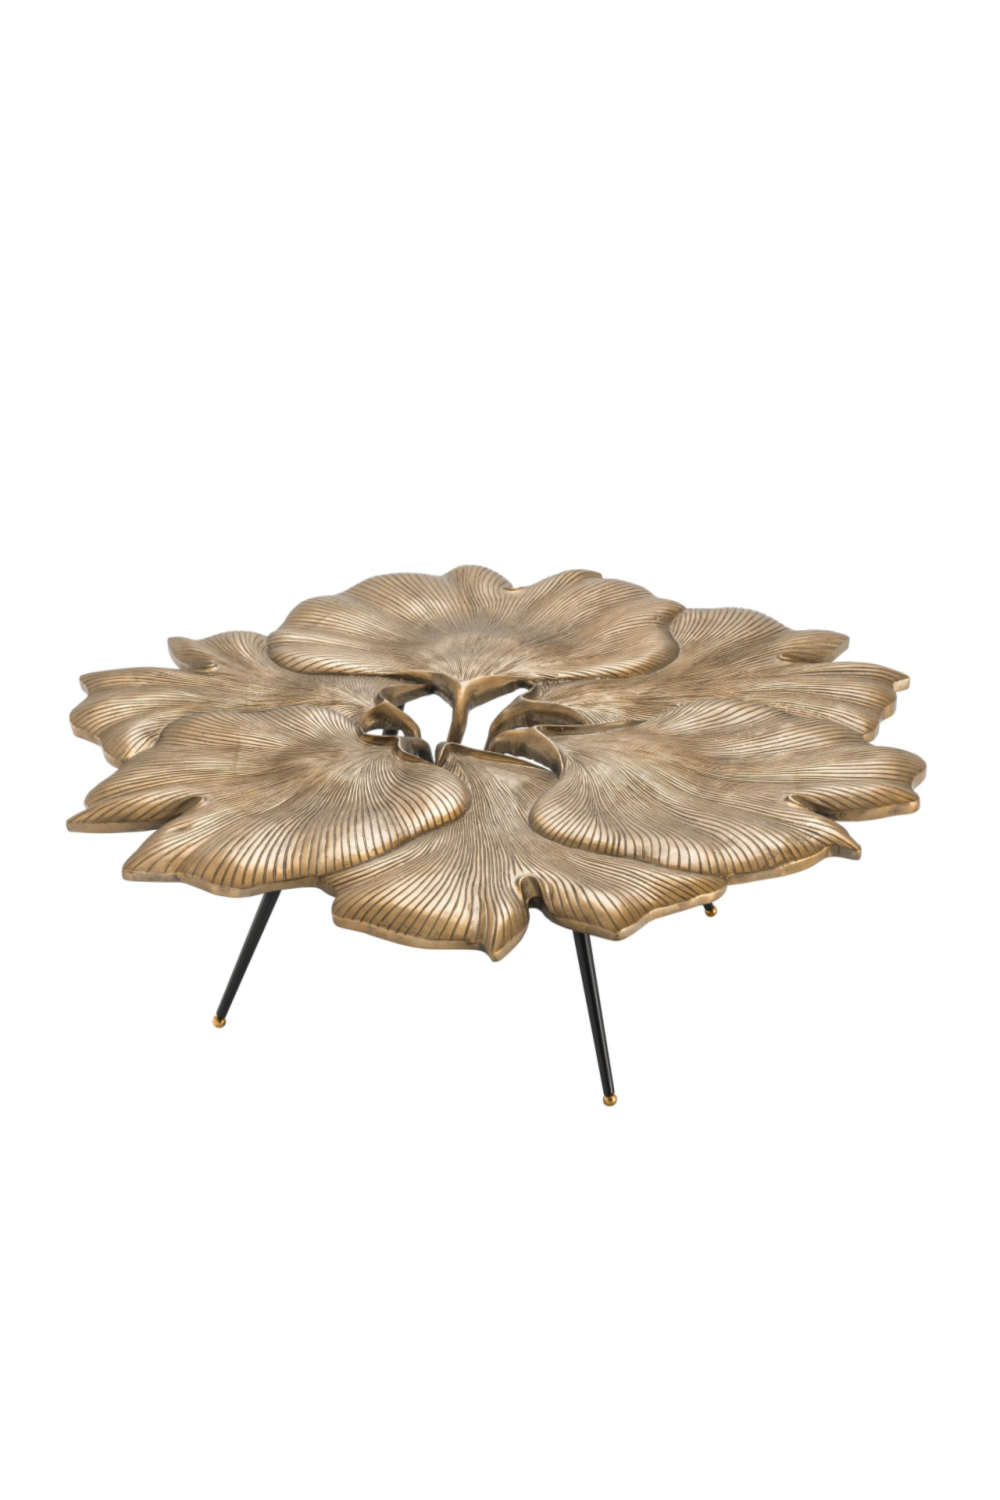 Biloba Coffee Table | Eichholtz Ginkgo | OROA - Luxury Furniture